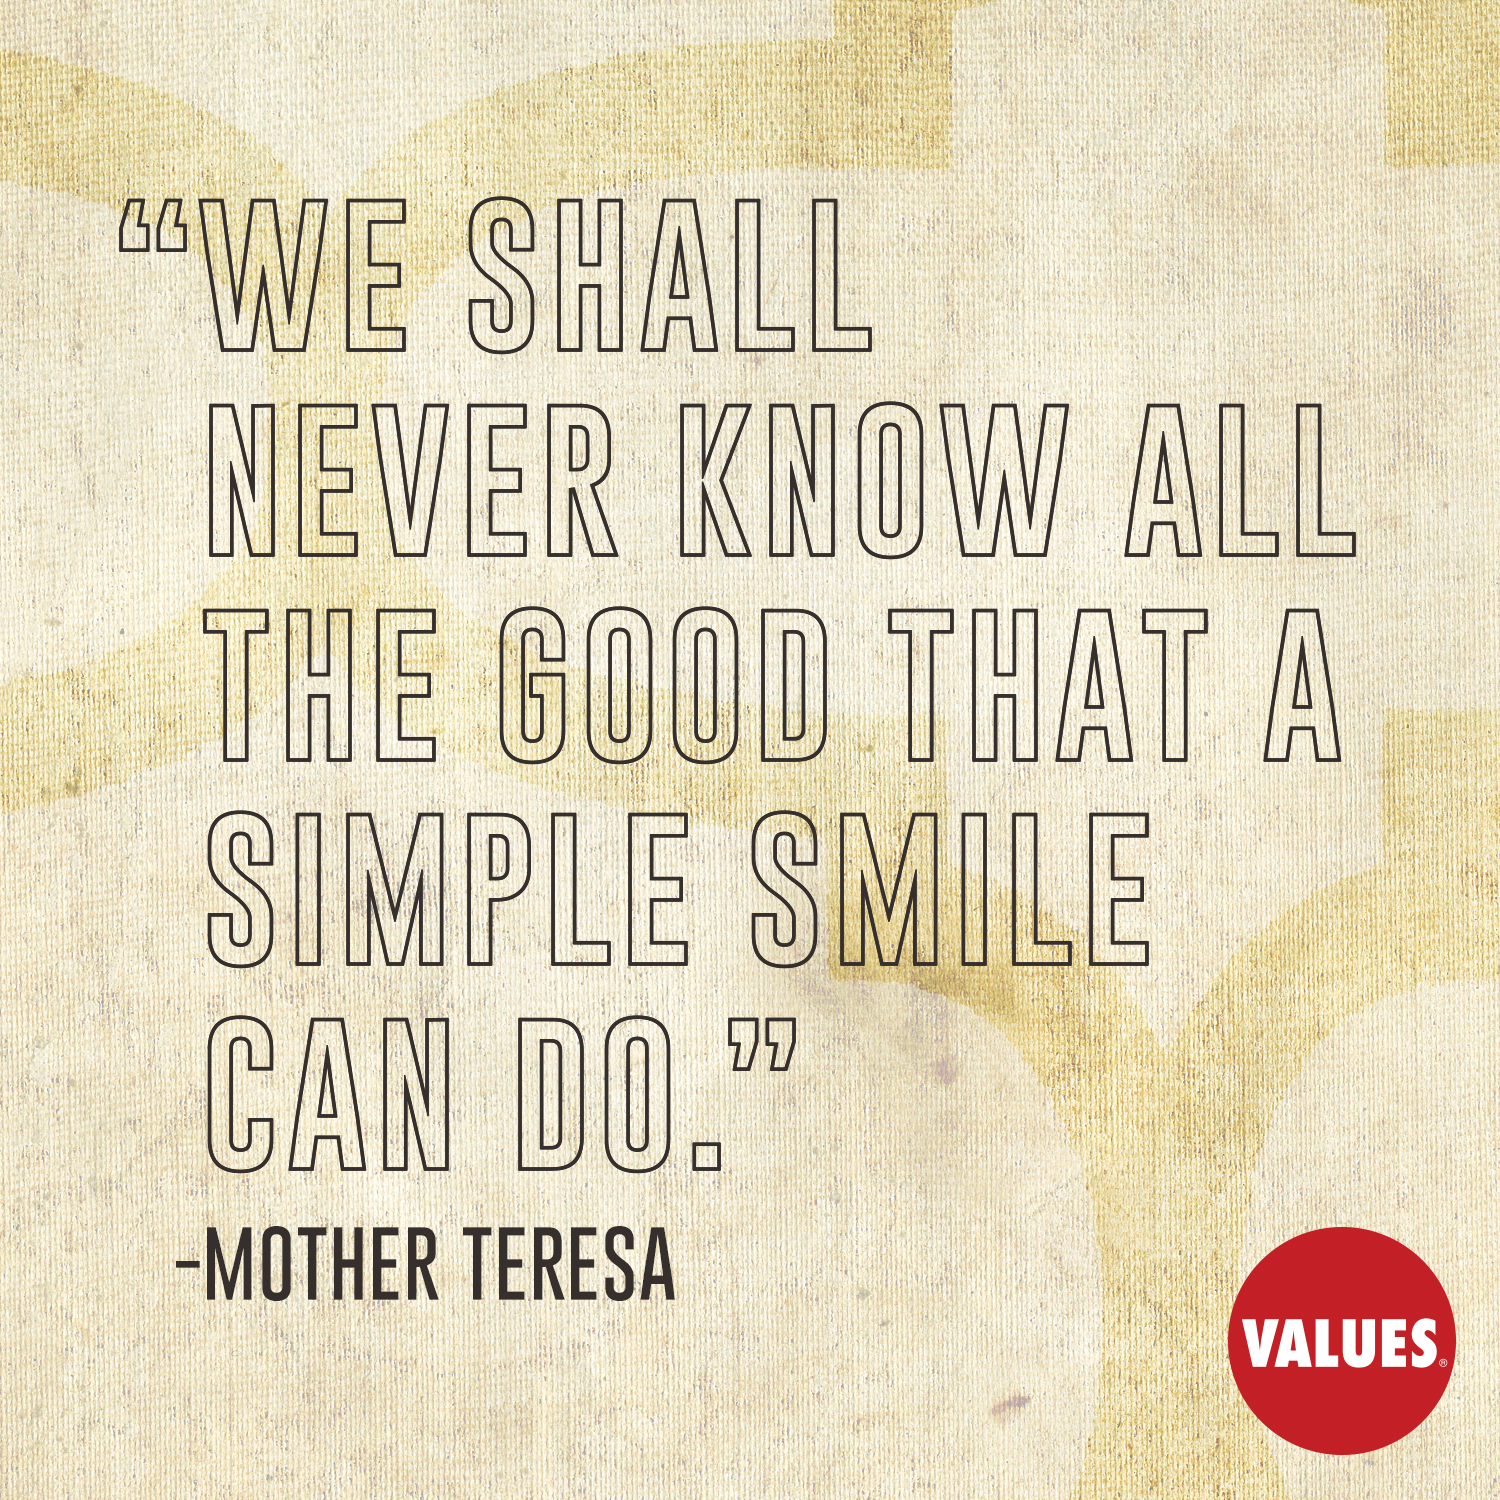 Value Of A Mother Quotes: Mother Teresa Quotes On Charity. QuotesGram